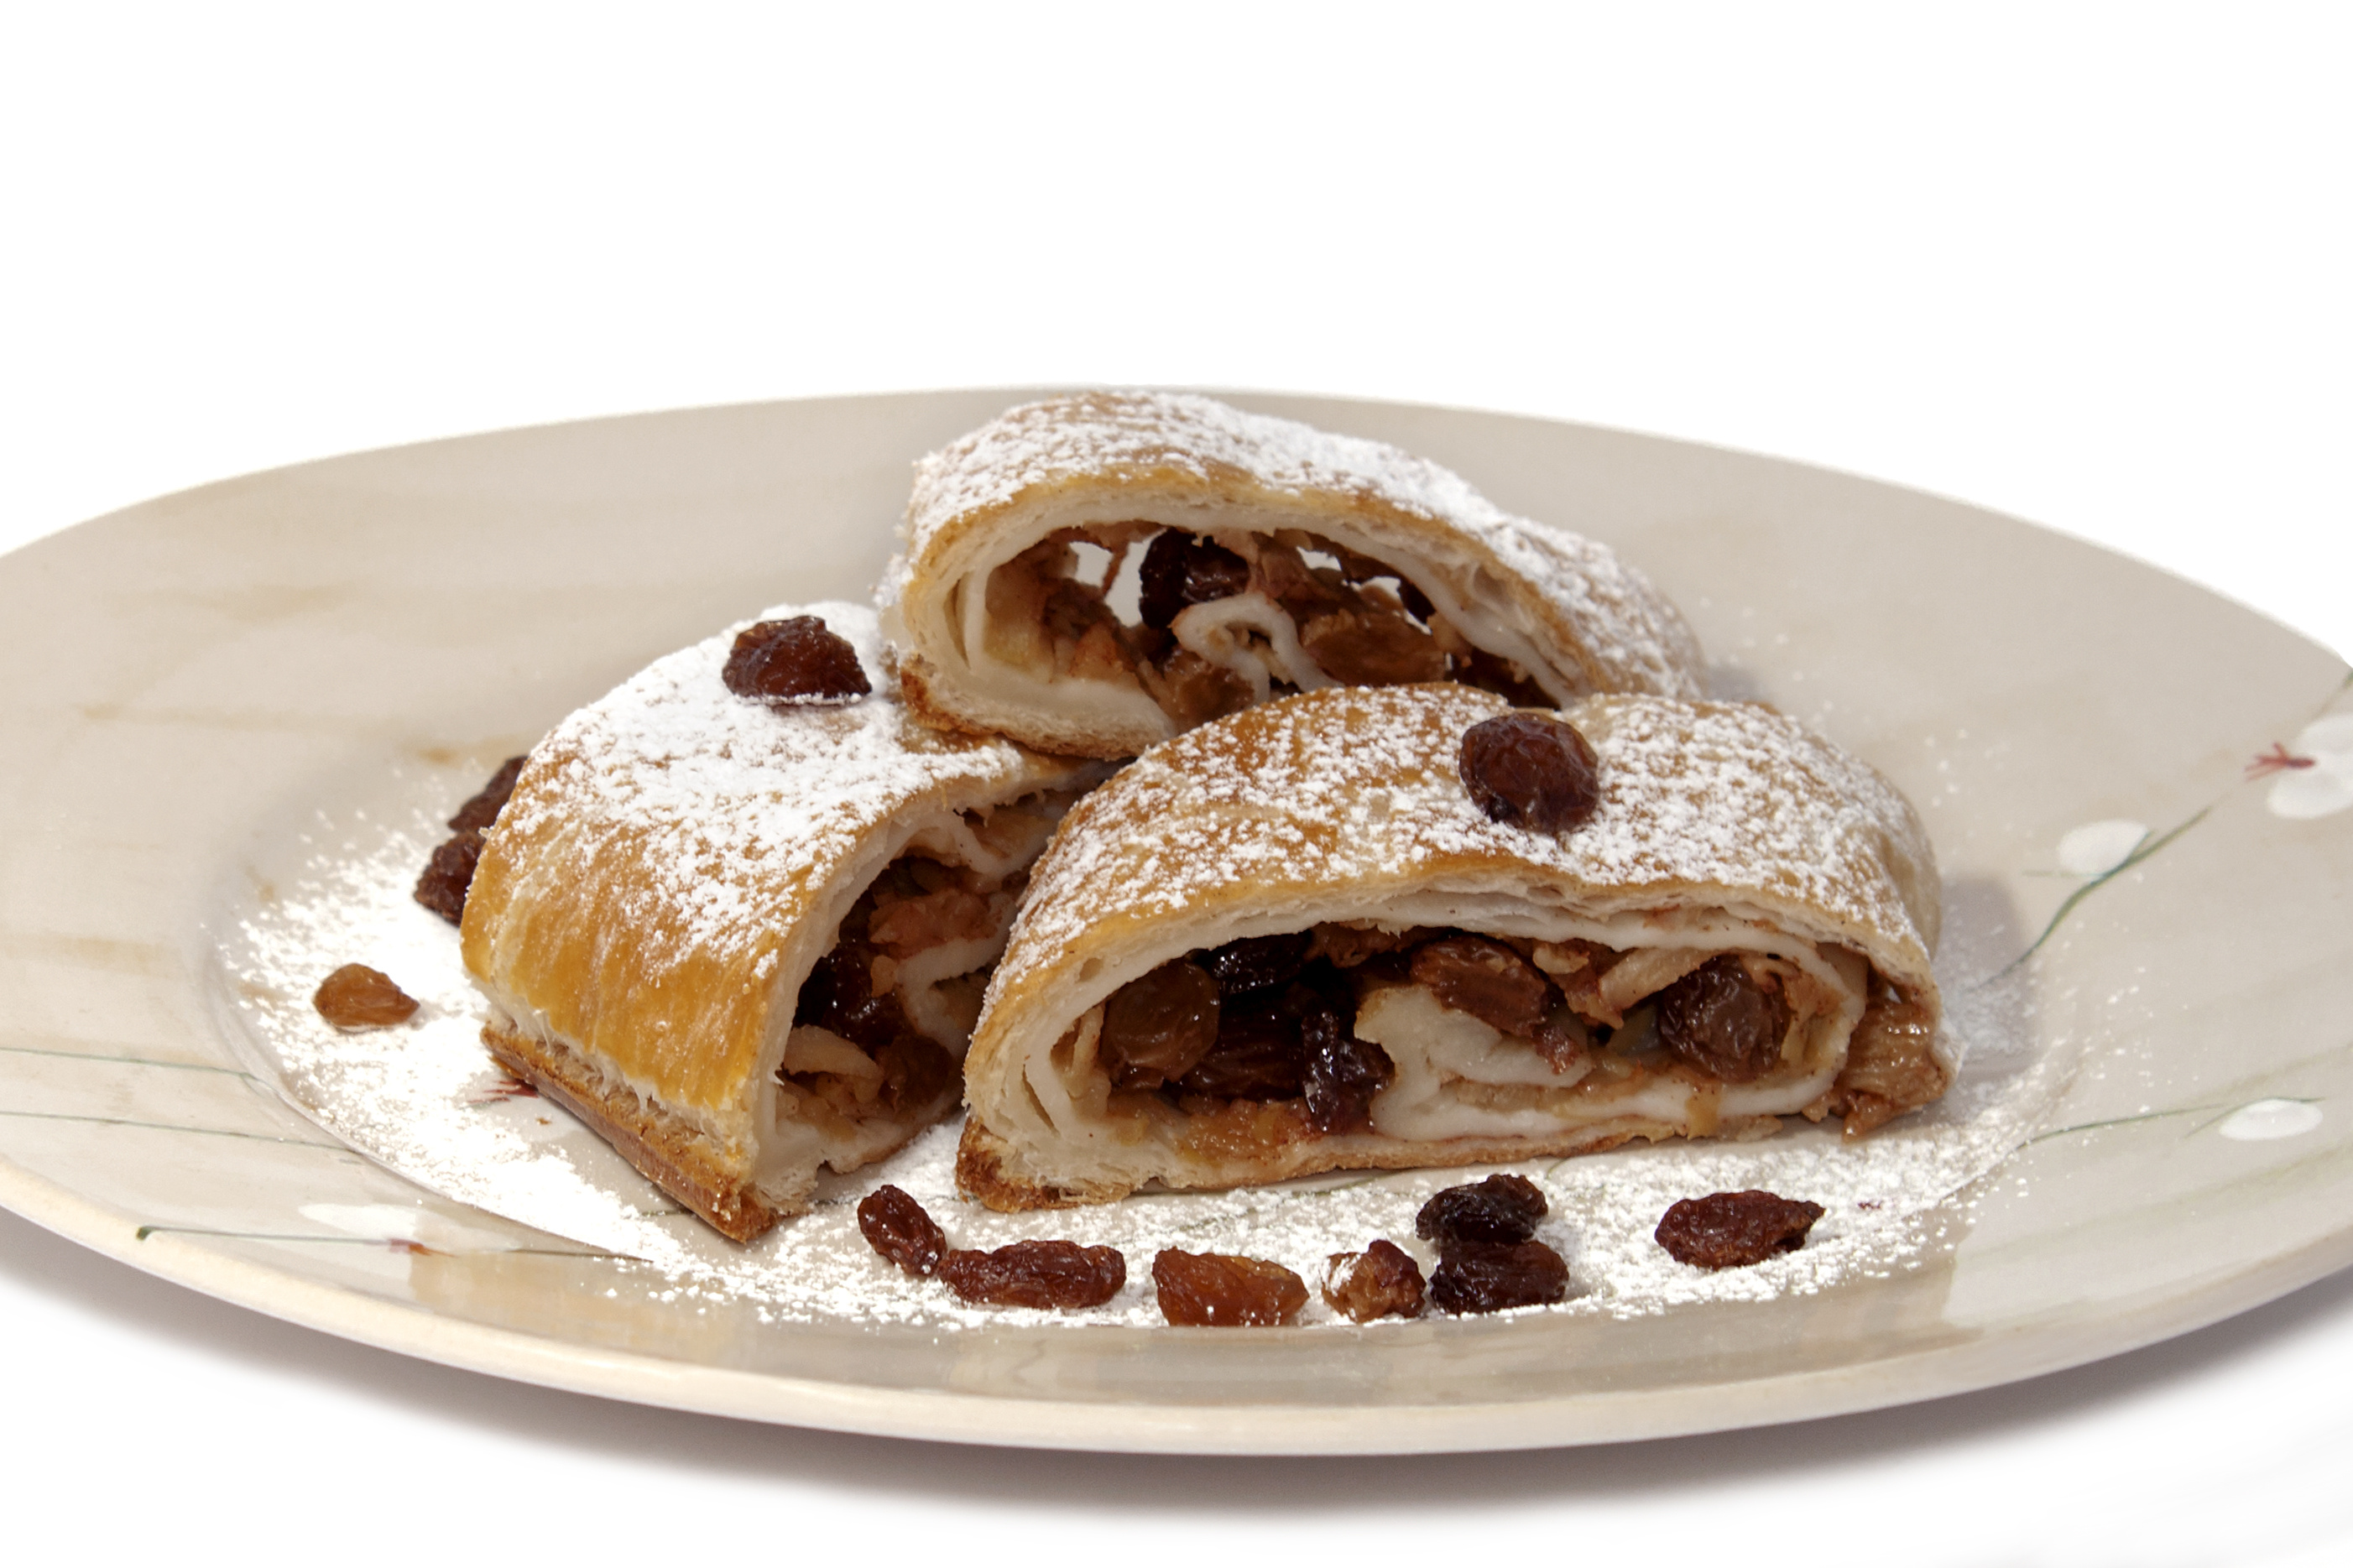 Italian sweets can be (kind of) healthy in Umbria. Strudel with apples, raisins, and nuts by brhlena.